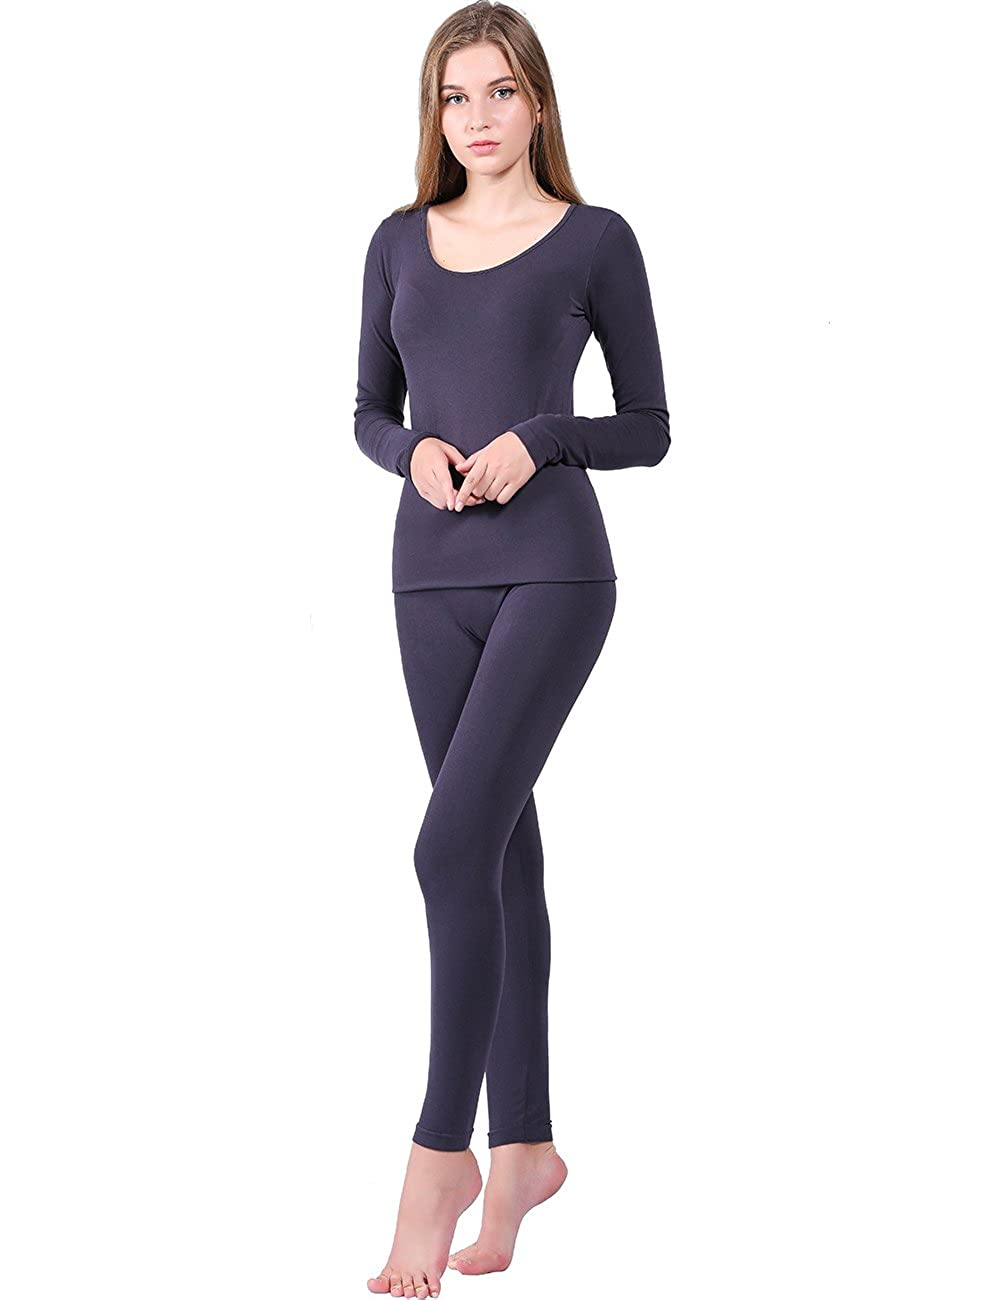 9b1acb7614468d Jeans WiWi Women's Bamboo Thermal Underwear Sets Long Johns Base Layer Top  and Bottom S-XL